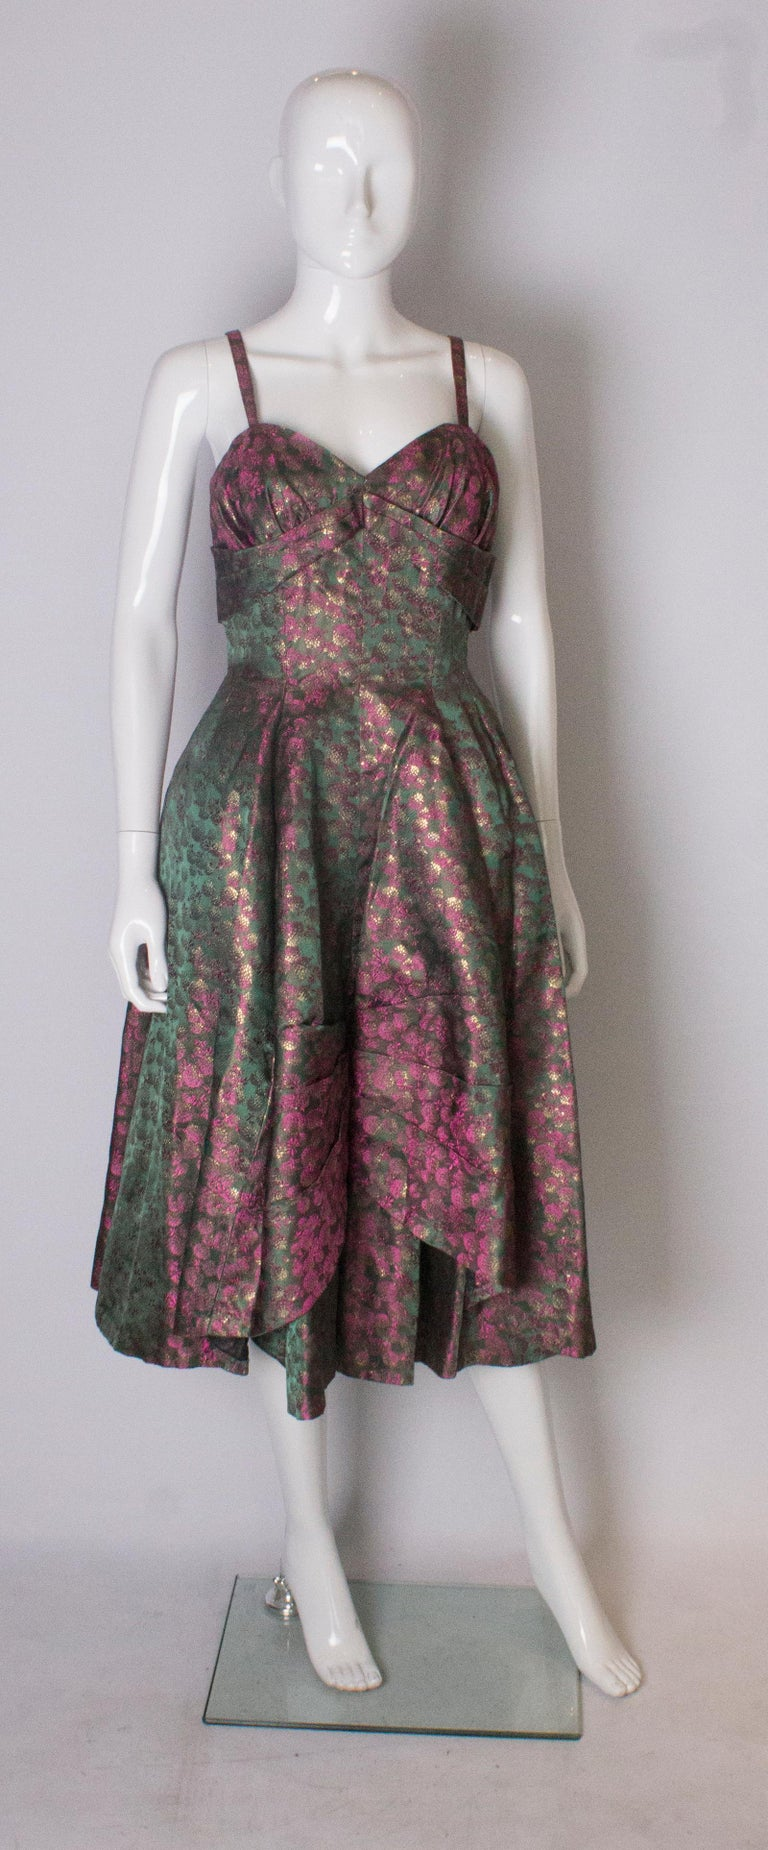 A chic cocktail dress in a pink and green brocade  combination.  The upper part is boned, with a fold under the bust and the skirt has a built in petticoat. The dress has a central back zip.